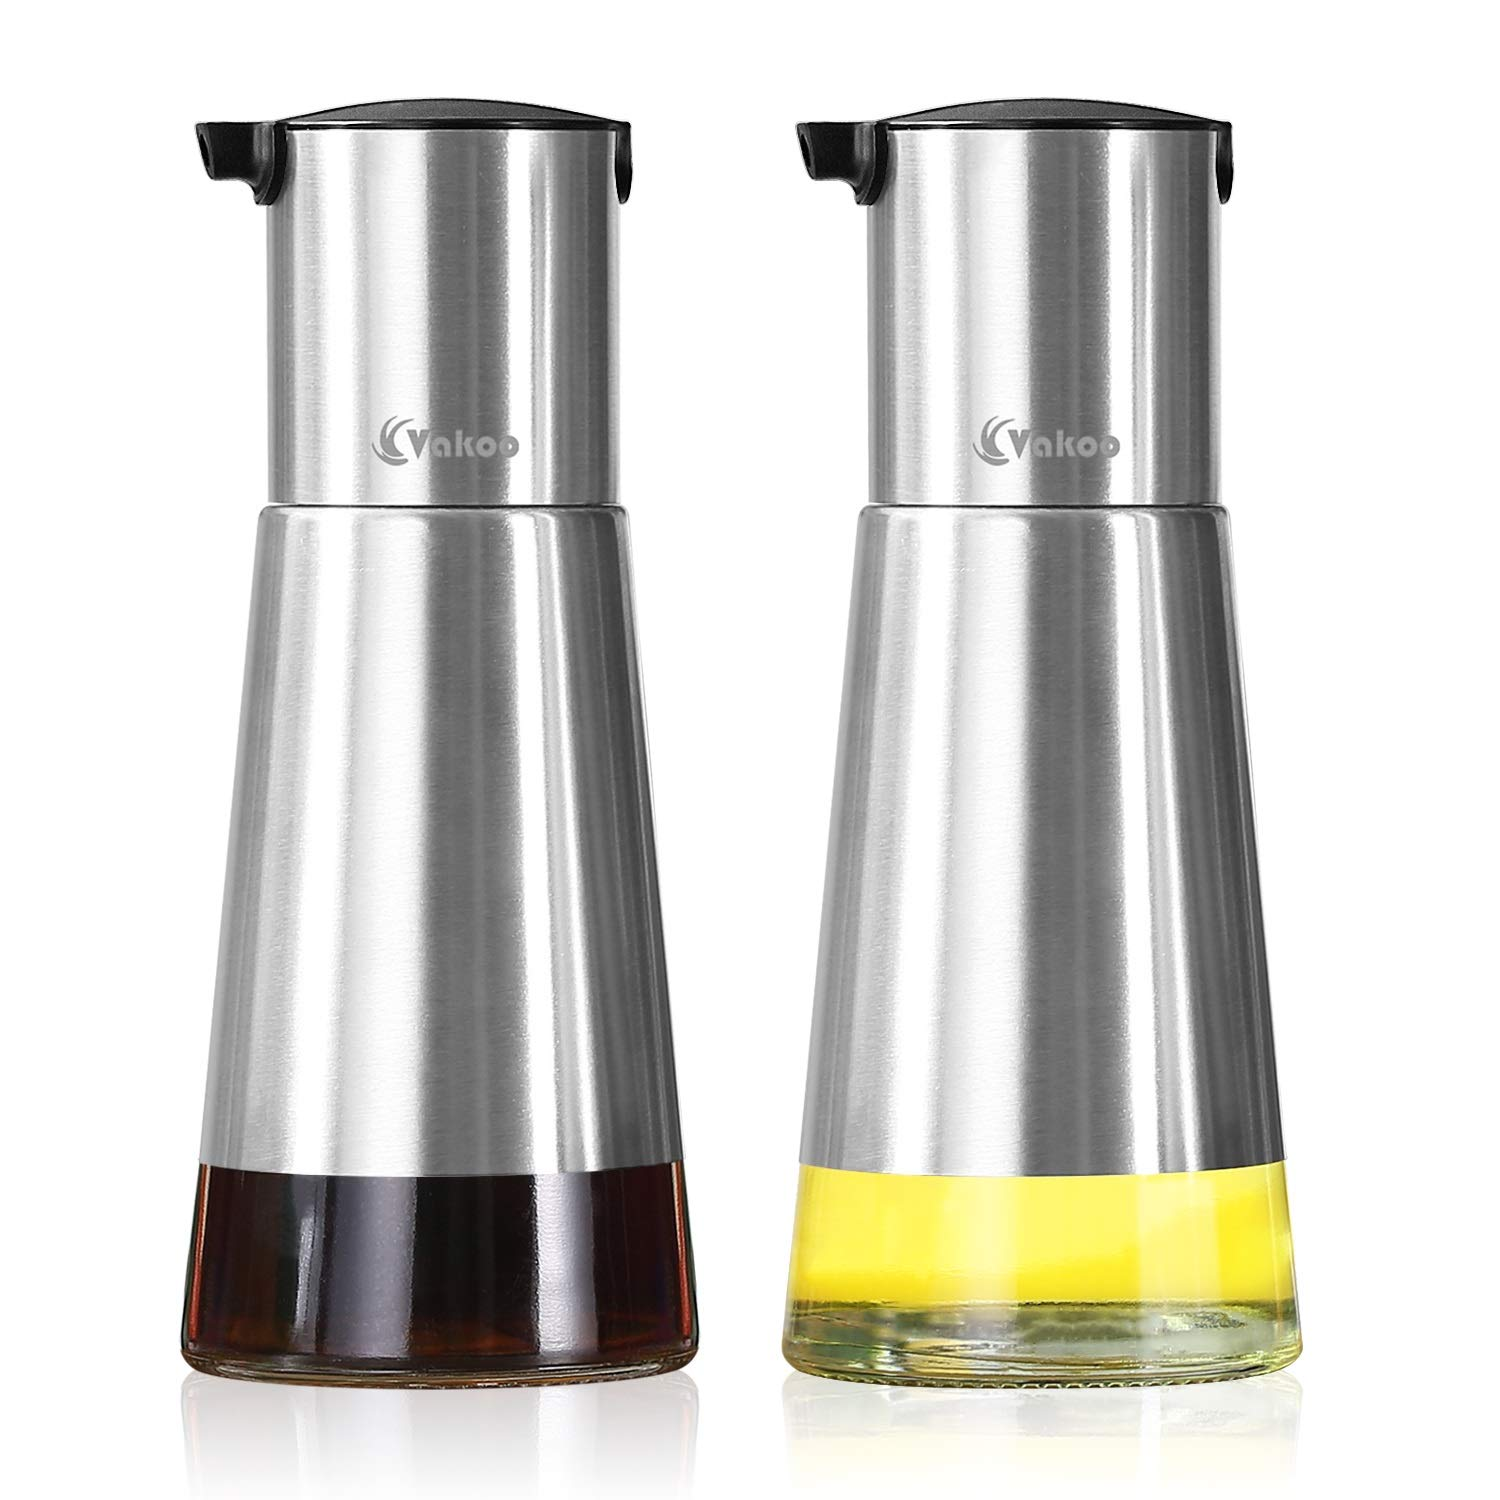 Vakoo Oil and Vinegar Dispenser Set - 2 Pack No Drip Olive Oil Bottle with Non-Slip Glass Cruet Bottle and Stainless Steel Protective Cover - 16oz Salad Oil Pourer(8oz / Bottle)